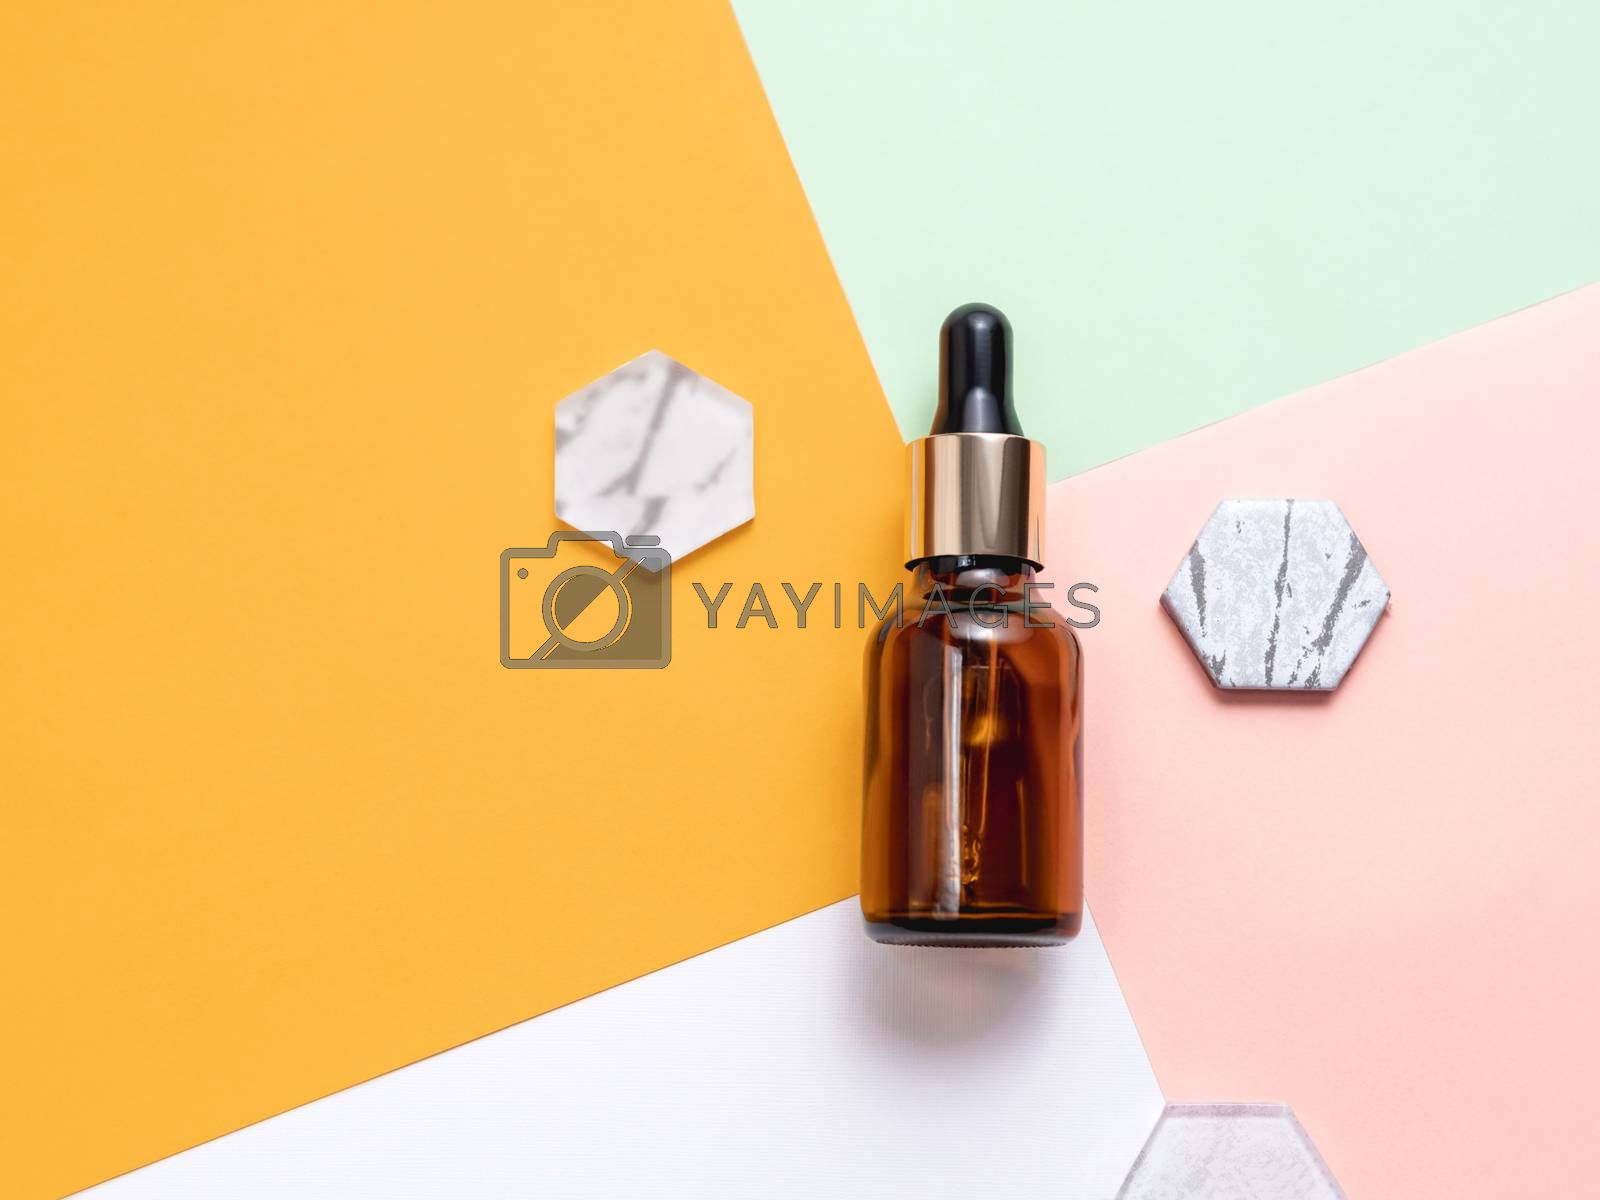 Top view on glass bottles of essential oil or cosmetic serum on colorful geometrical background. Decorative marble and glass hexagons.